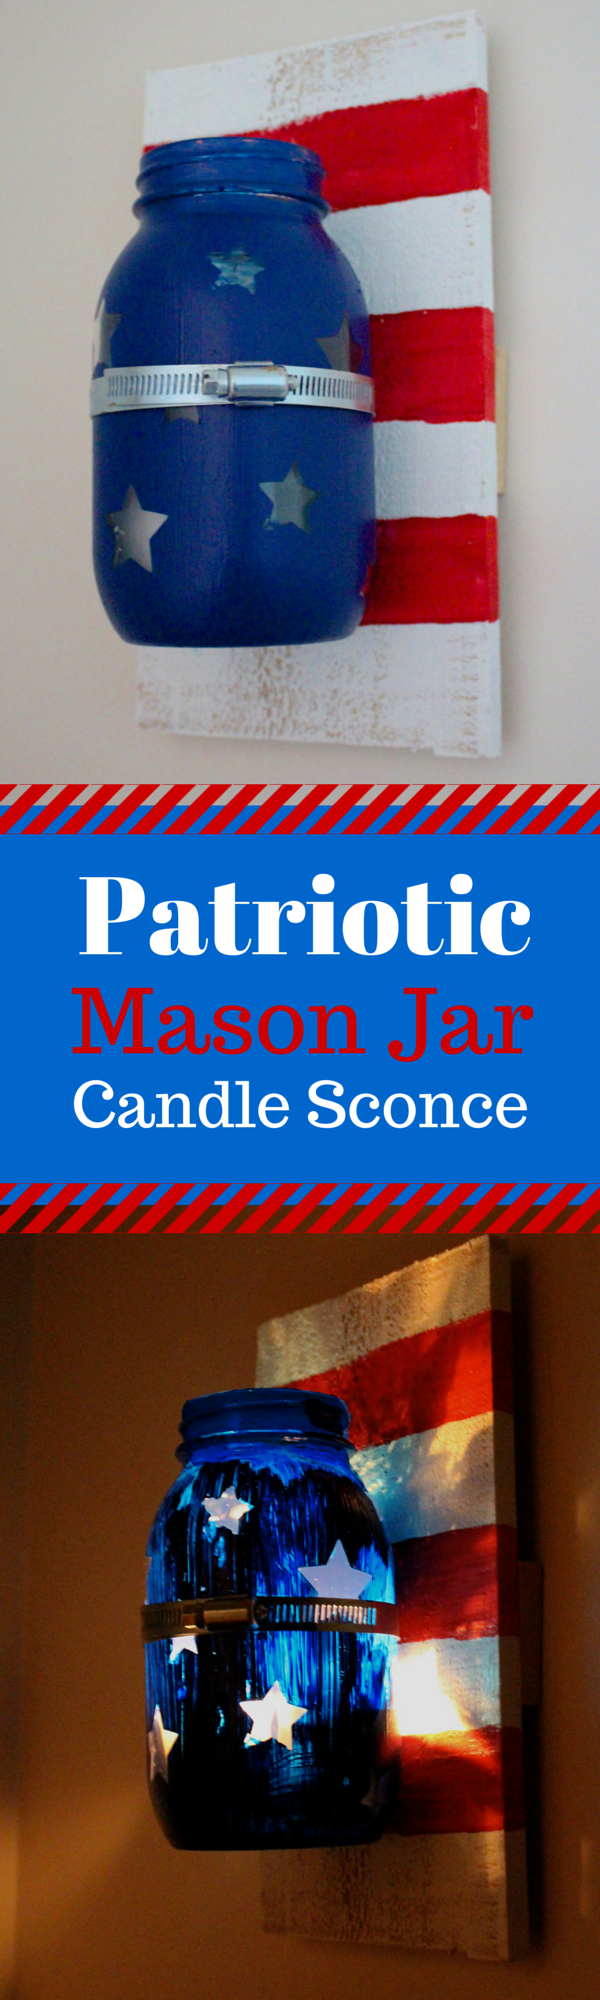 Patriotic Mason Jar Candle Sconce